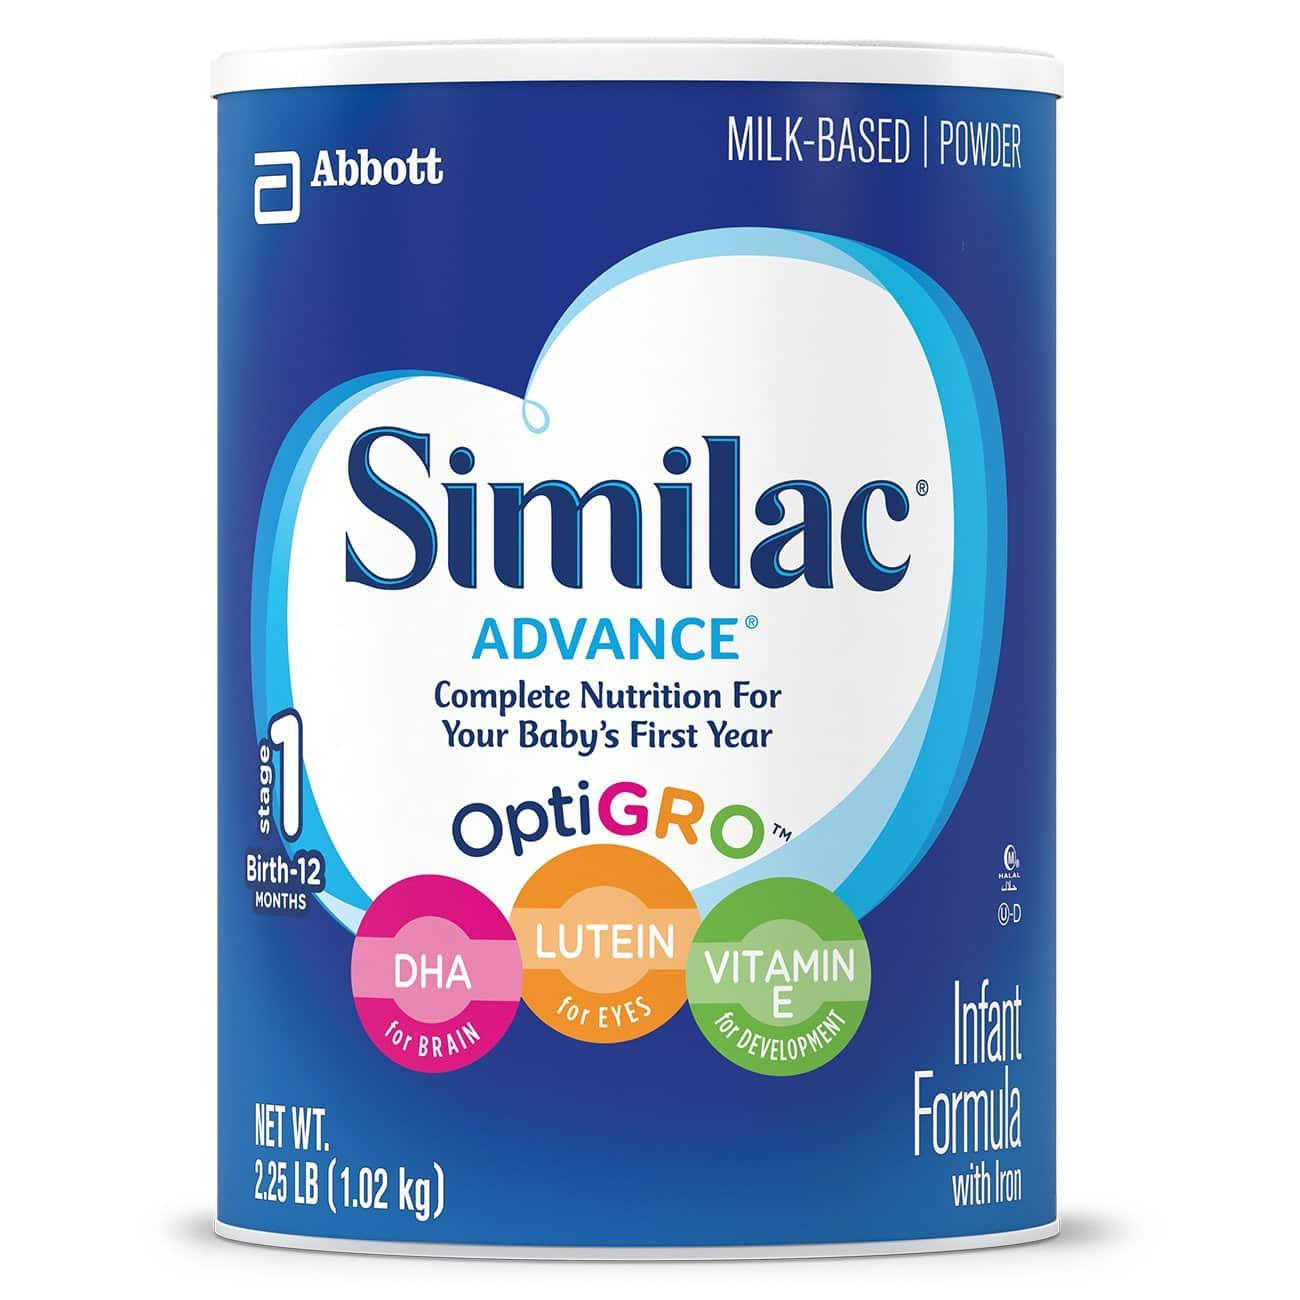 3 Pack of 36 Ounce Containers of Similac Advance Infant Formula with Iron Powder - $67.11 AC & S&S ($55.93 AC & 5 S&S Orders) + Free Shipping - Amazon